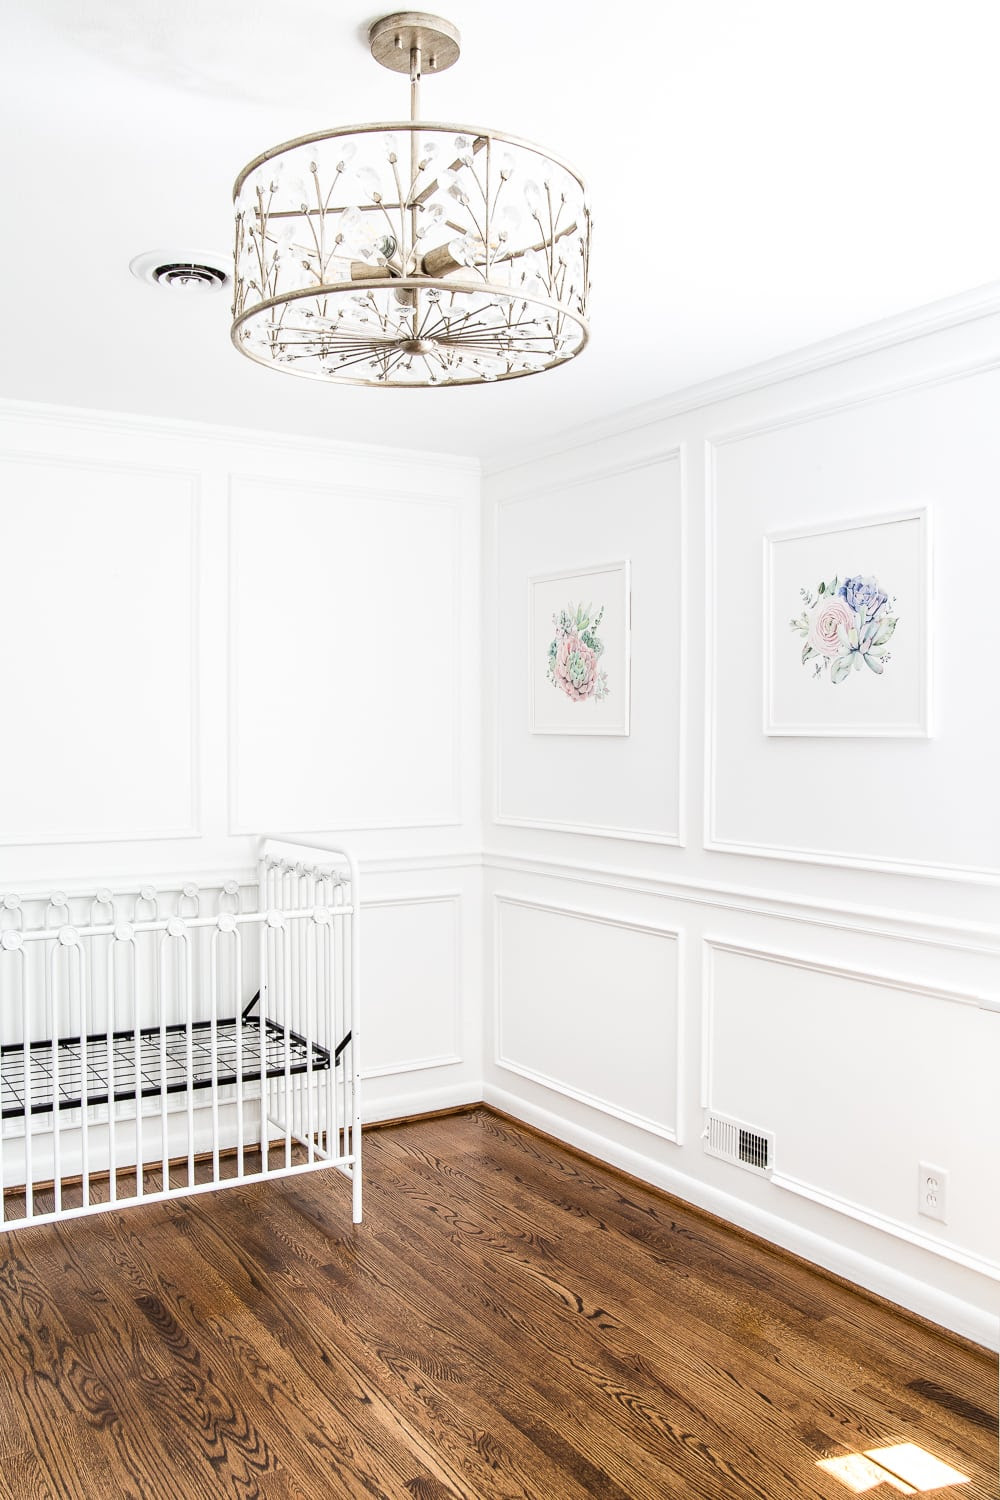 Newly refinished hardwood floors in a nursery